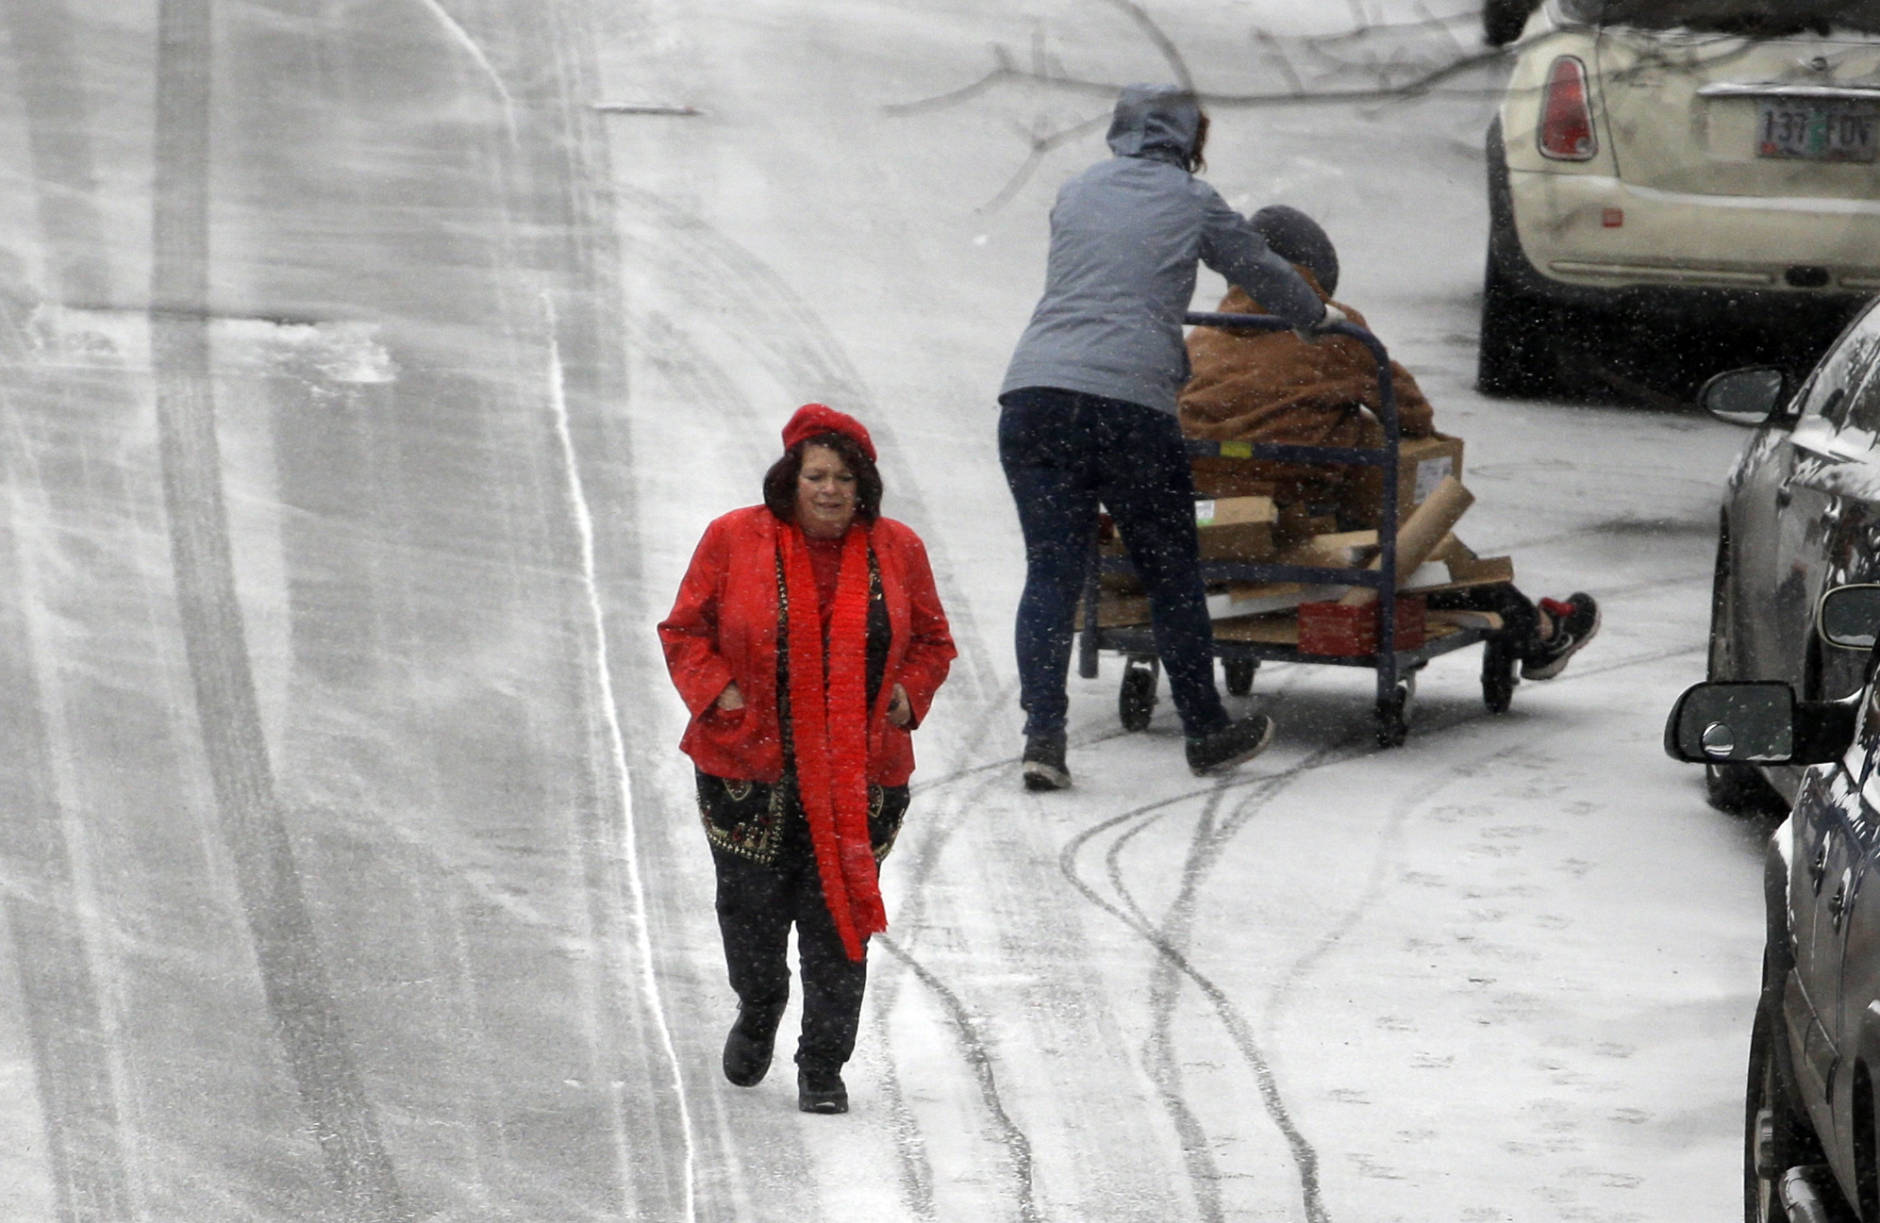 People maneuver on slick roads as a snow storm moves in on the area in Portland, Ore., Wednesday, Dec. 14, 2016. A wintry afternoon and evening is forecast for much of Oregon, with some cities expected to get a foot of snow.(AP Photo/Don Ryan)